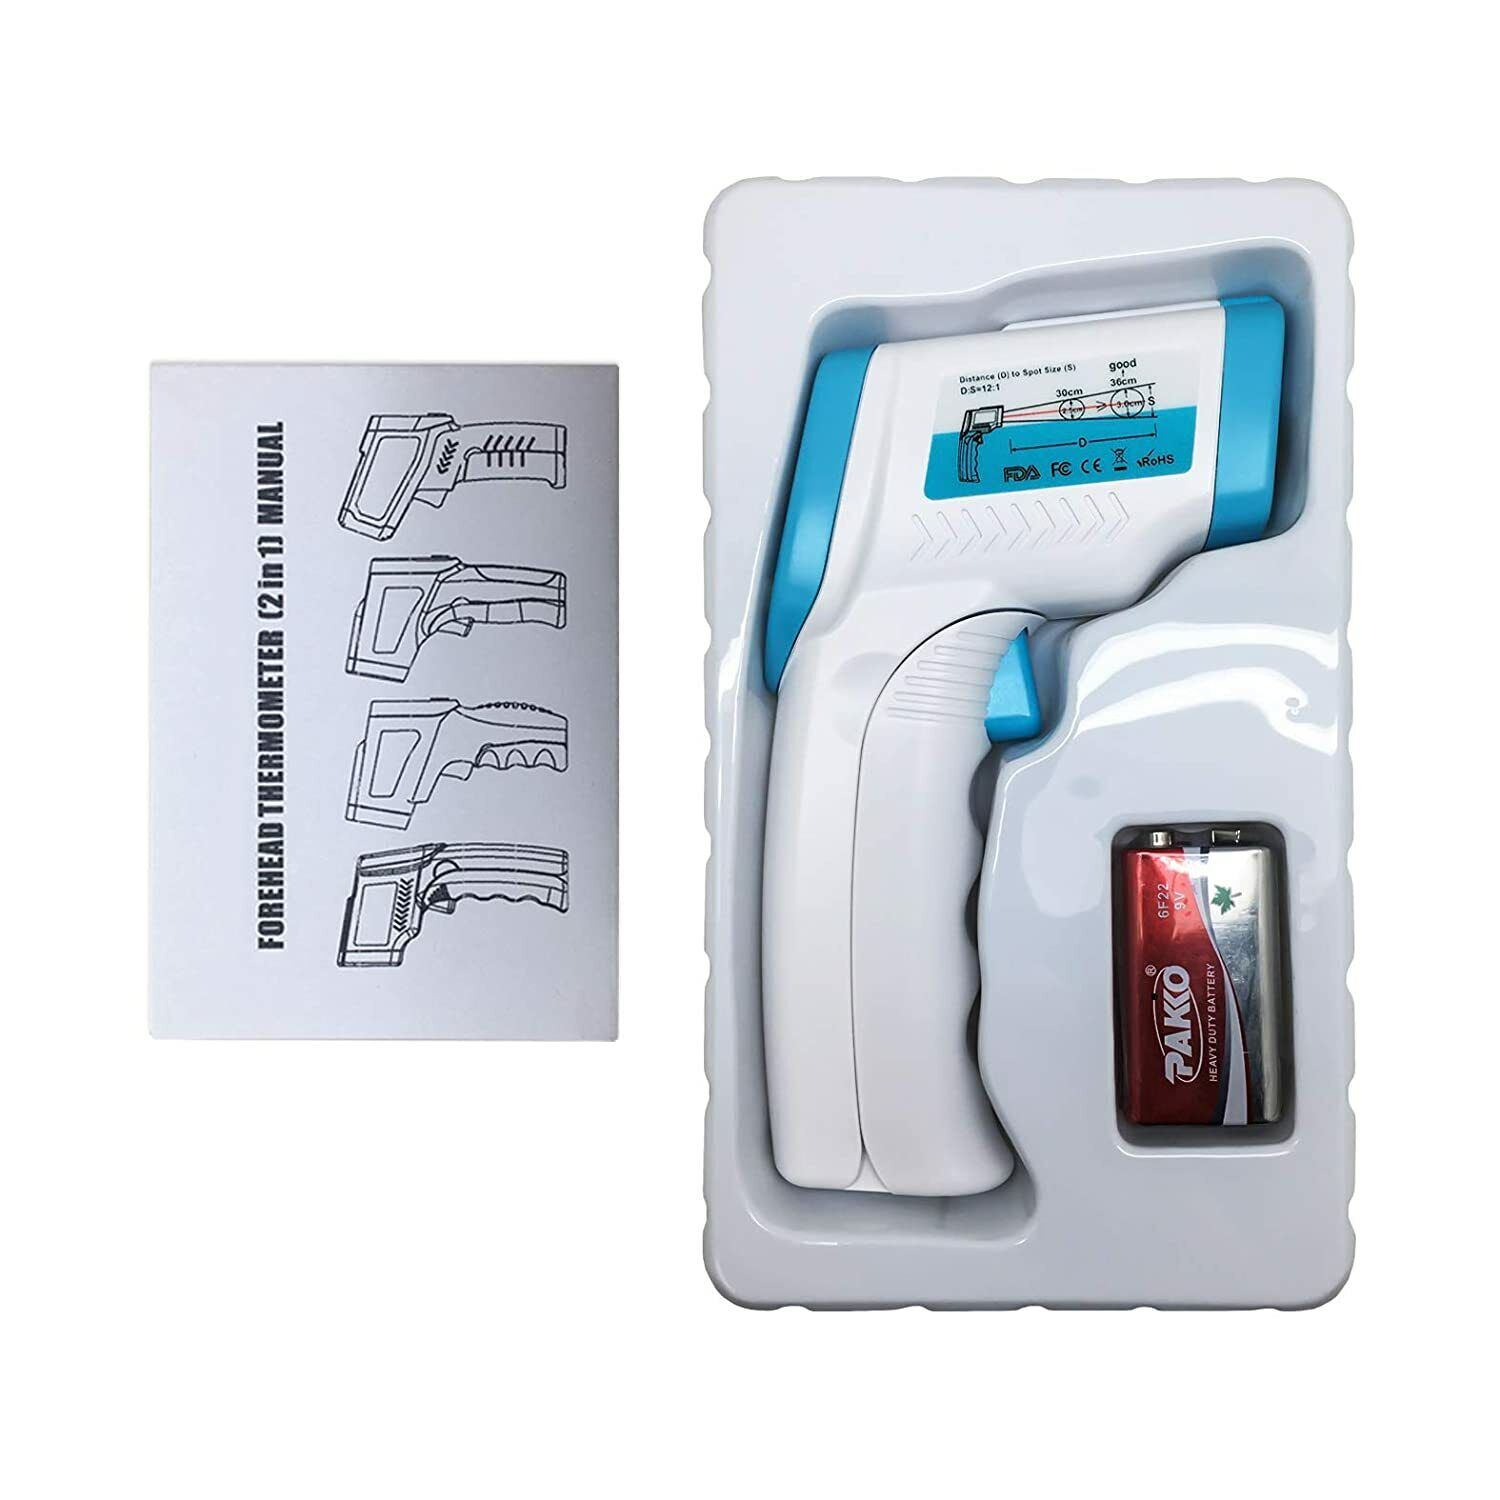 Non-Contact IR Infrared Forehead Thermometer with 3 Functions – °F and °C Modes Business & Industrial